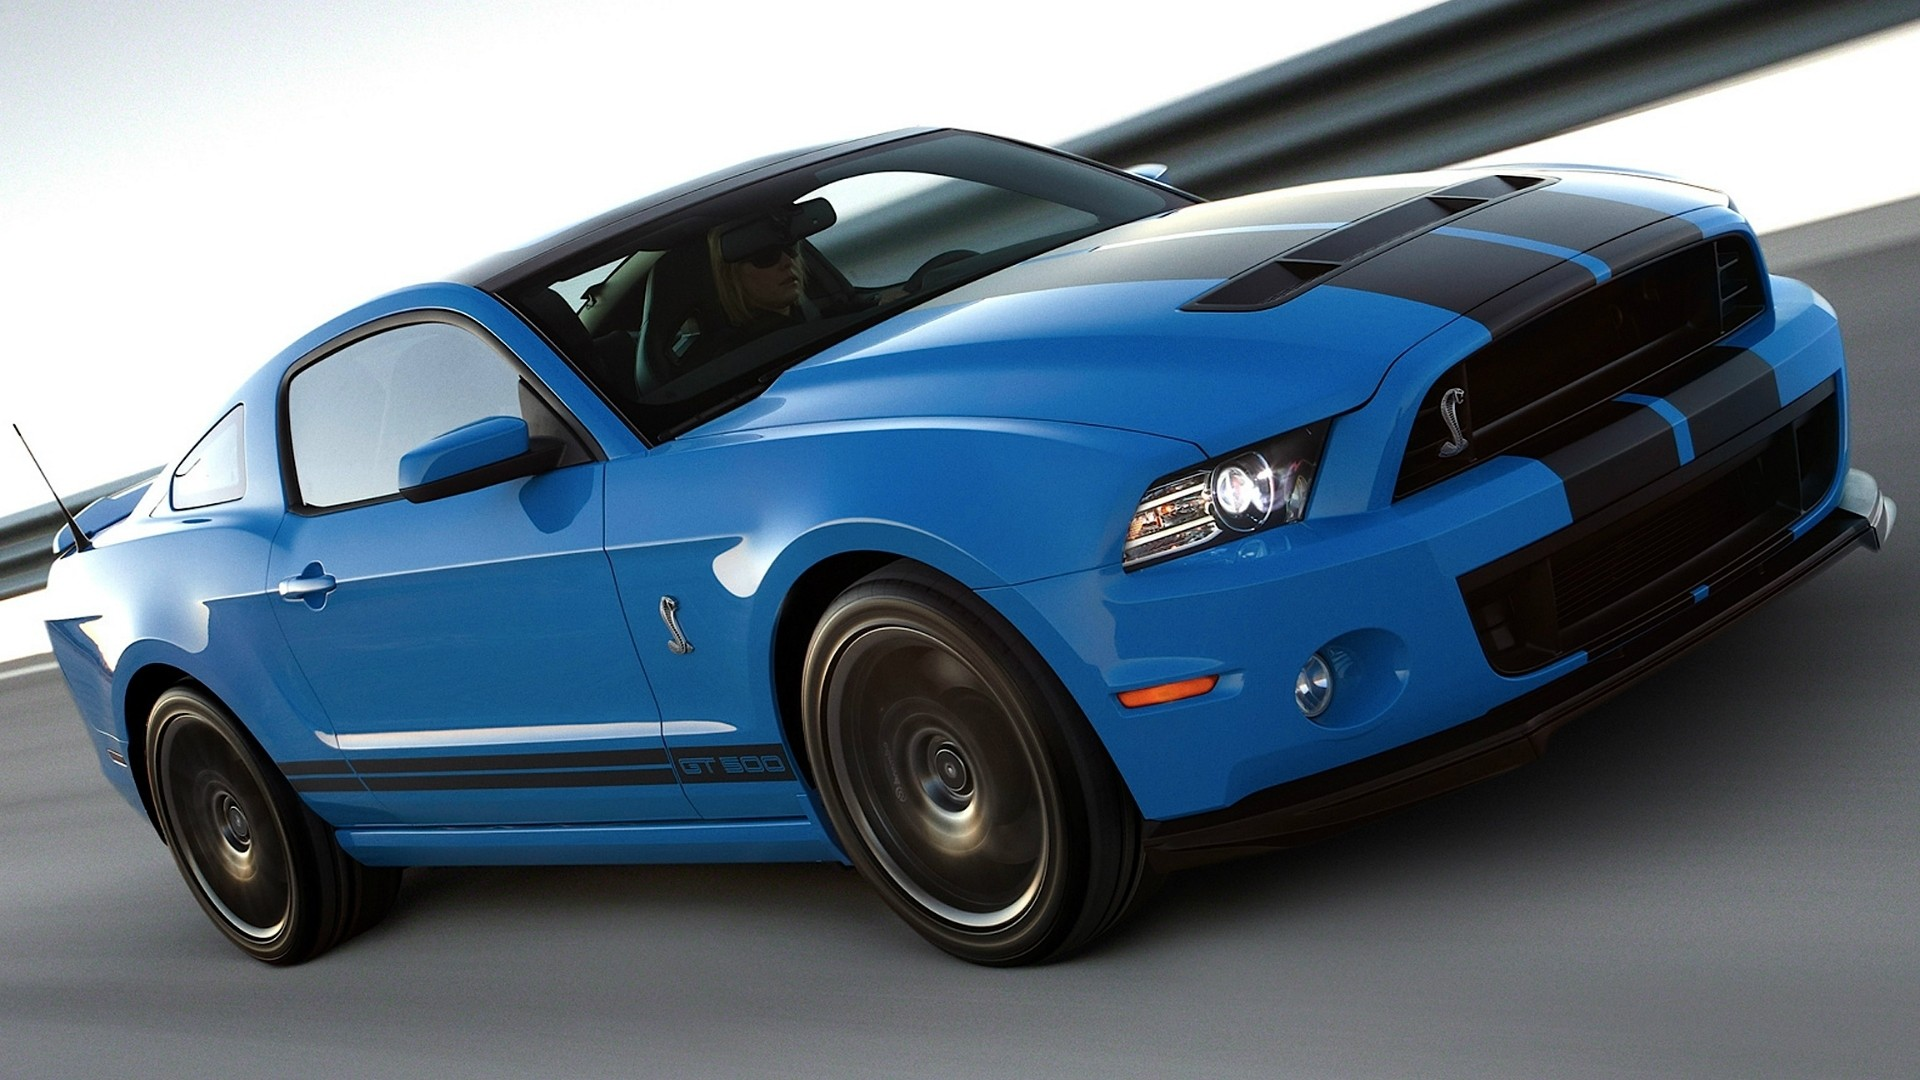 2013 Ford Mustang Shelby GT500 HD Wallpaper 2013 Ford Mustang Shelby 1920x1080